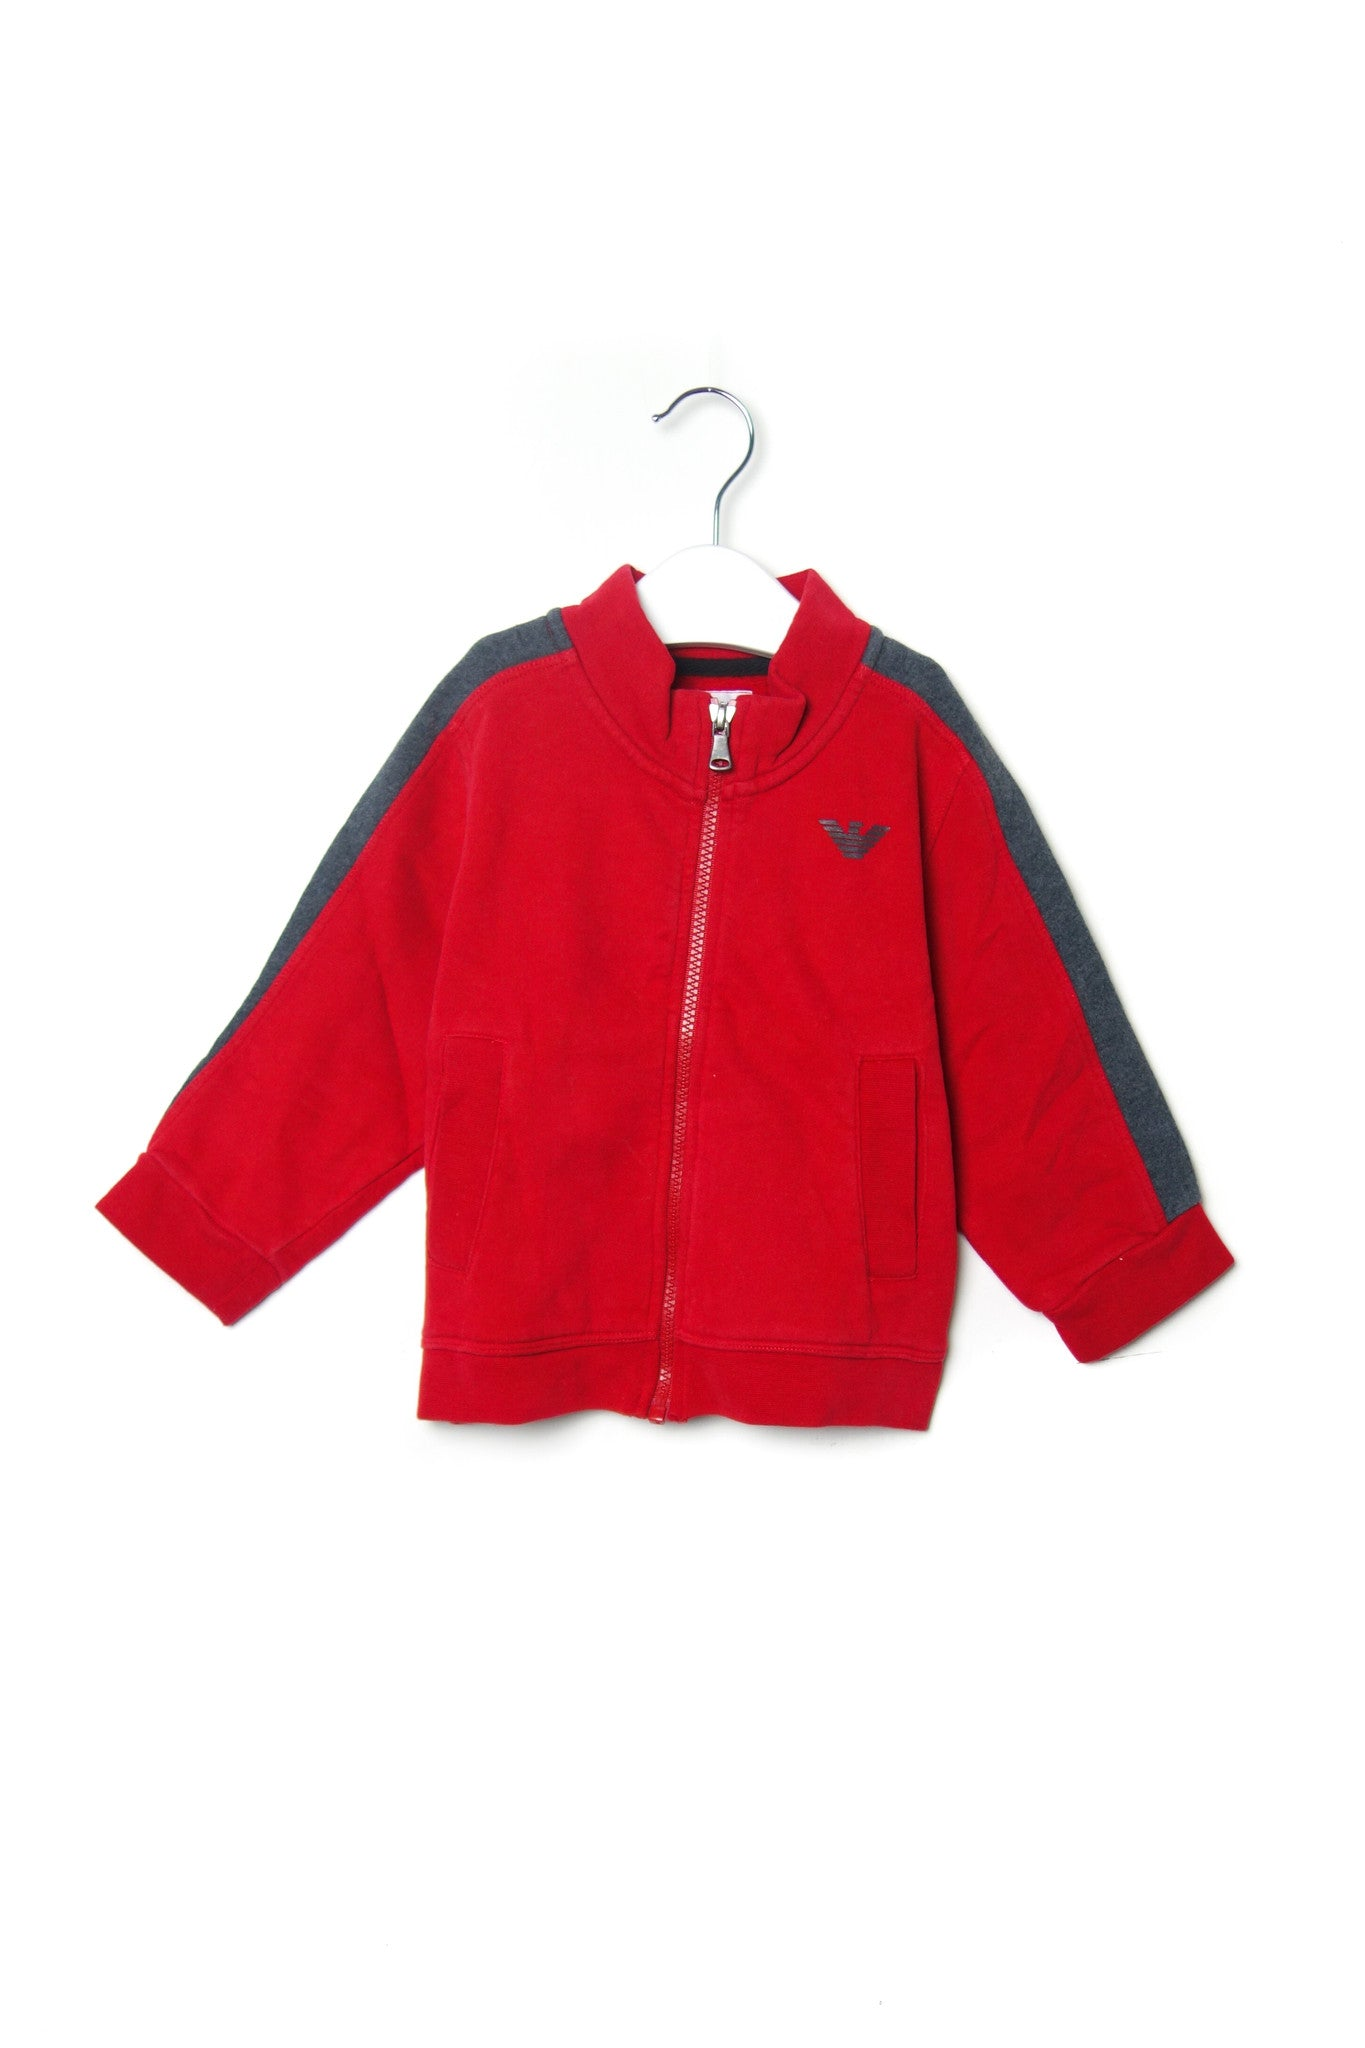 10001856 Armani Kids~Sweatshirt 2T at Retykle